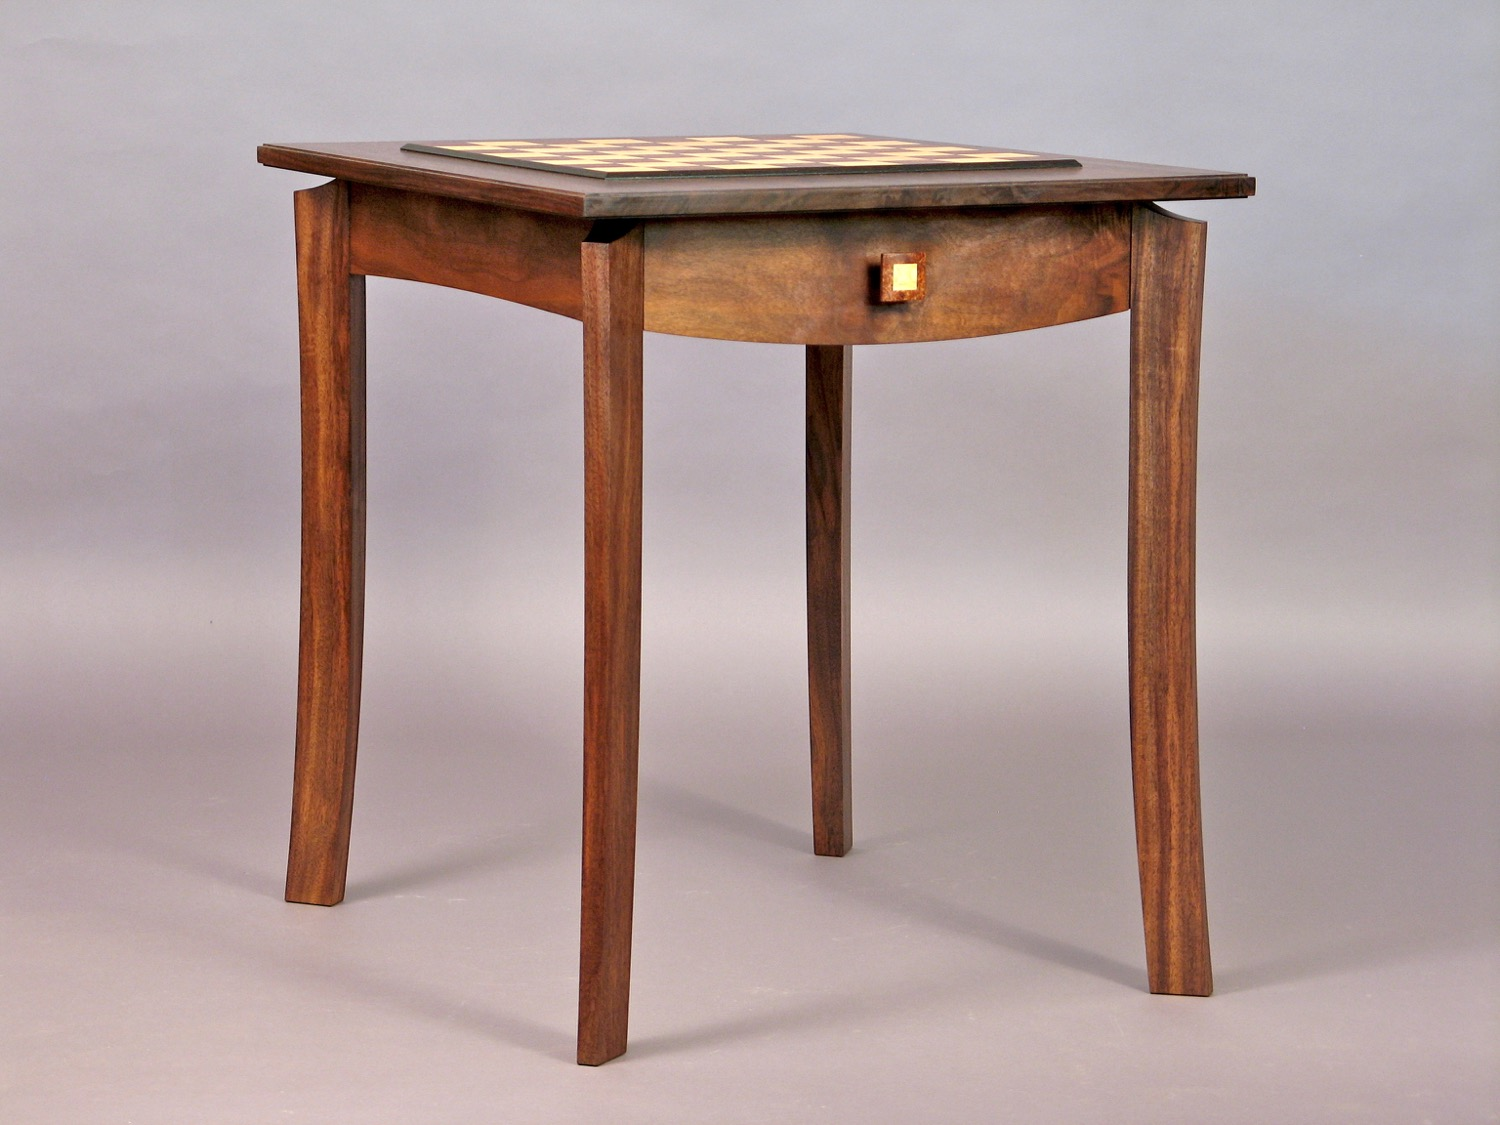 Gold chess table - walnut, ash, elm burl, bog oak